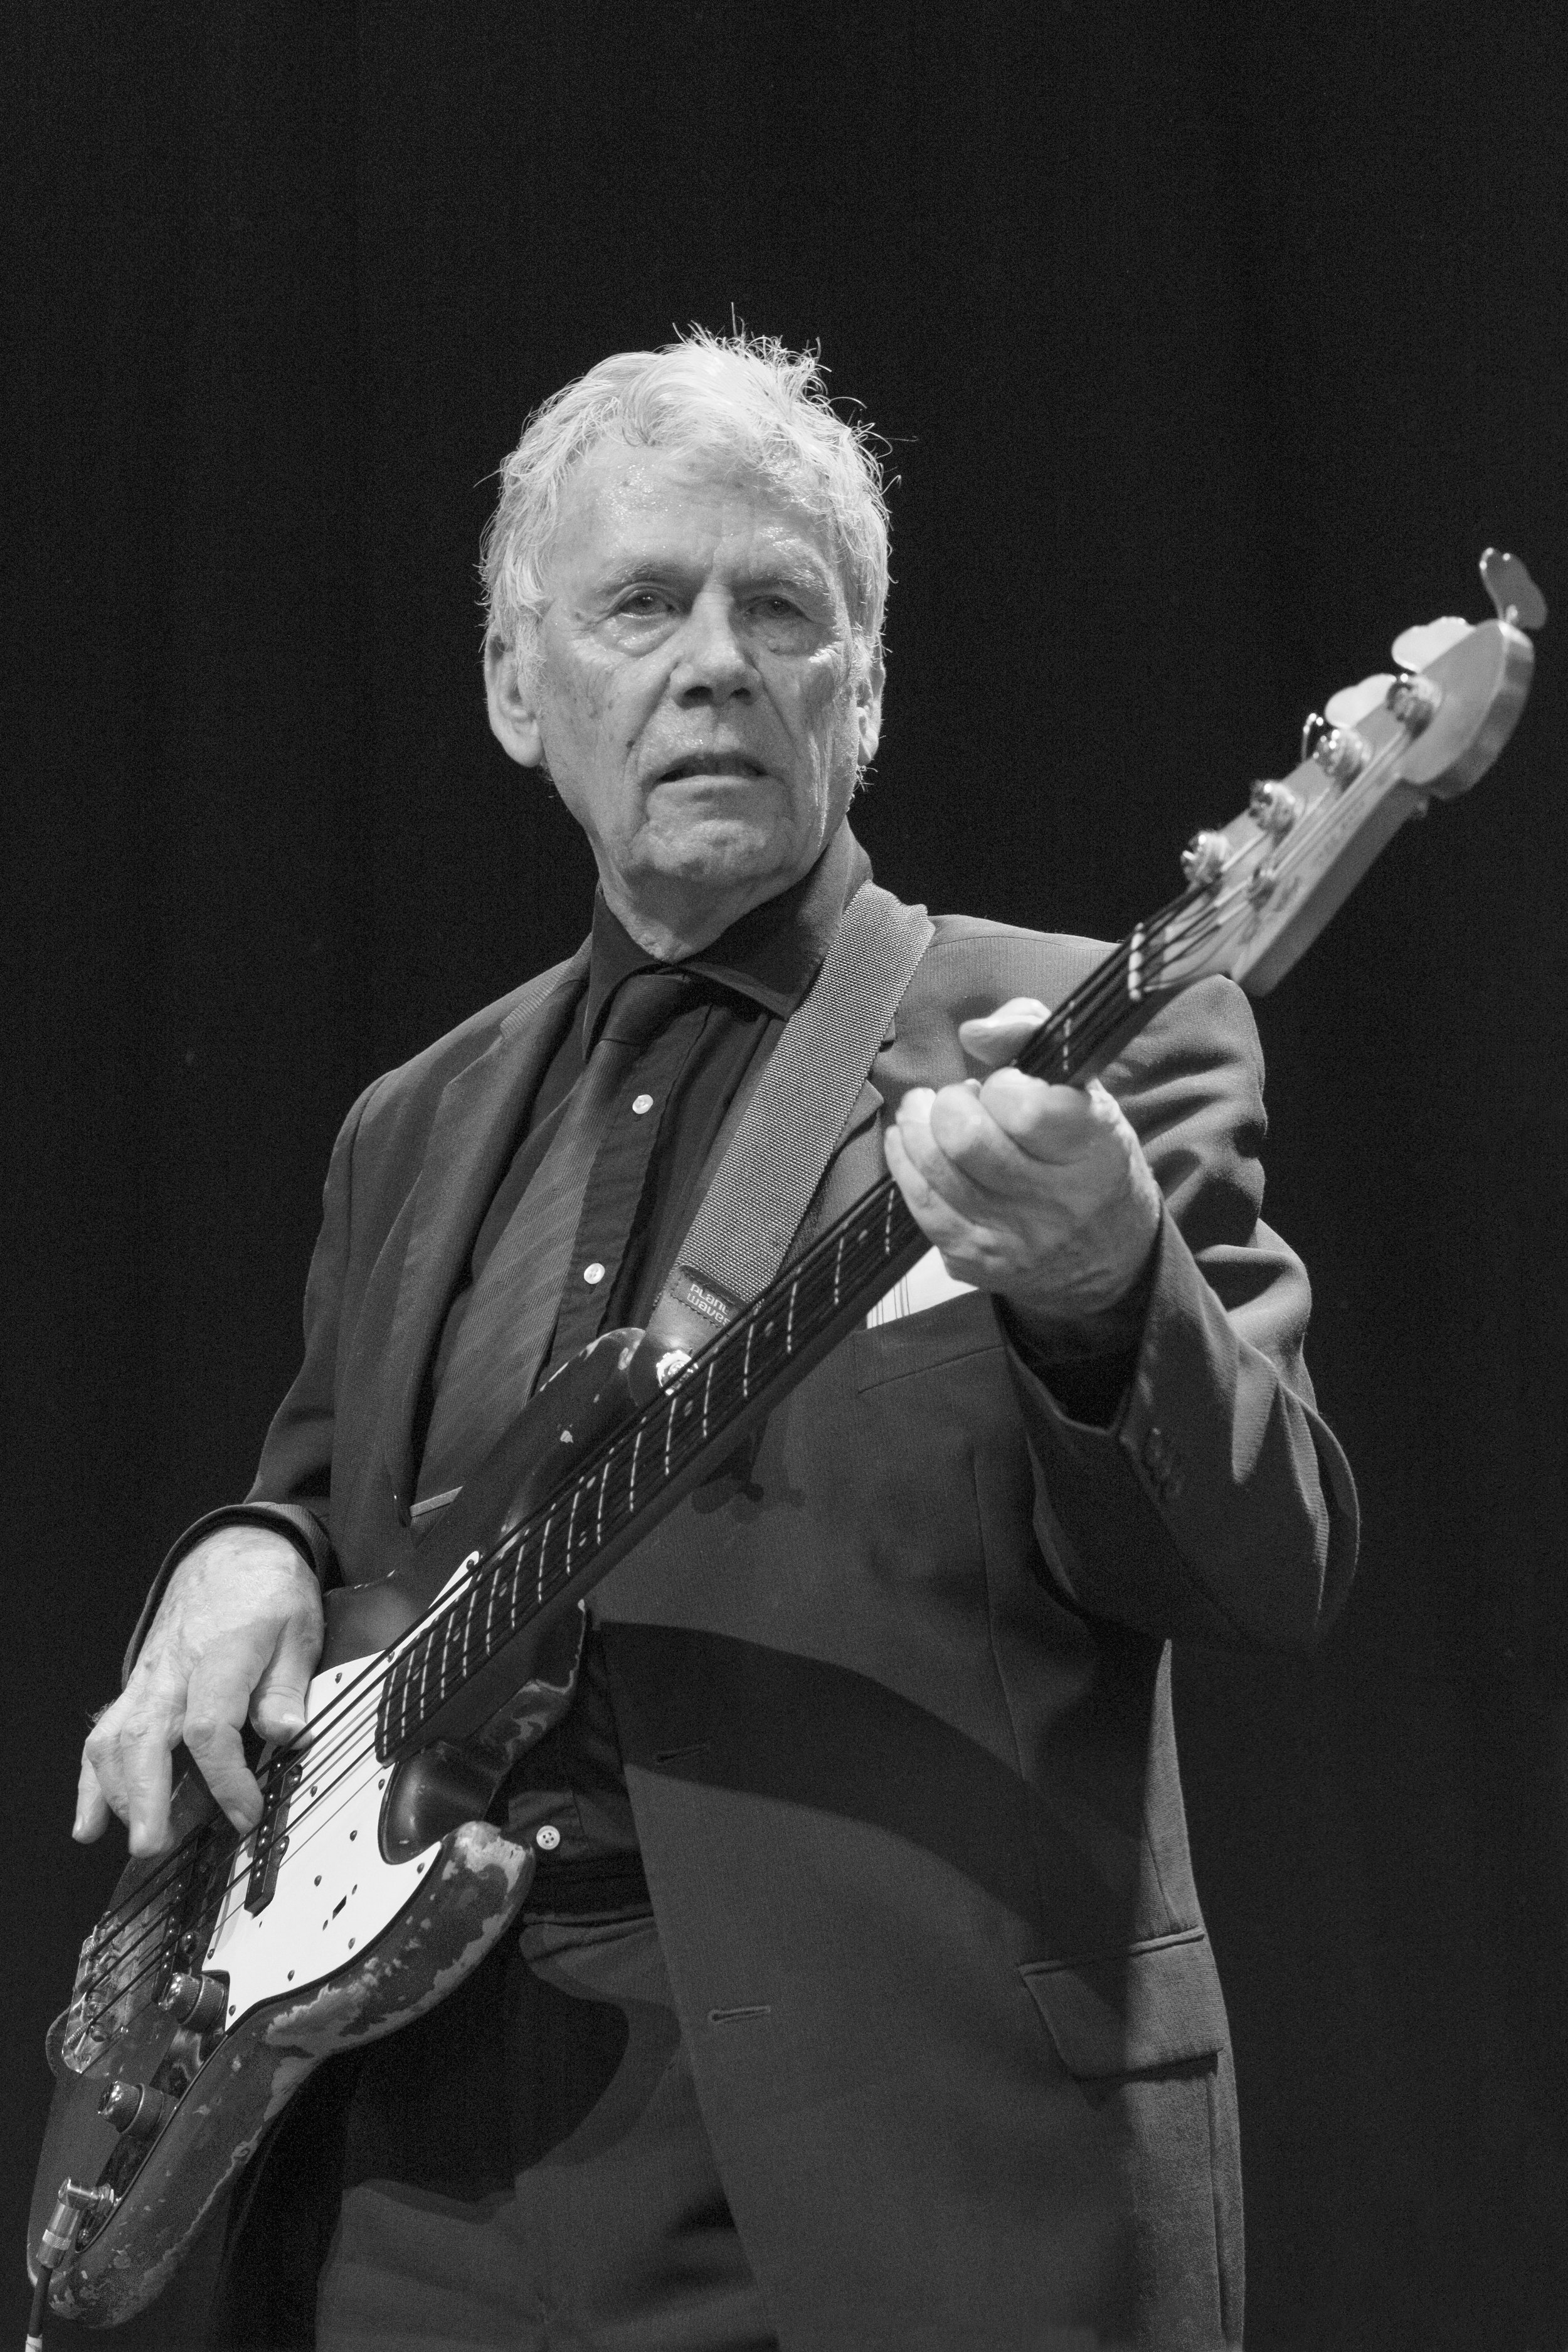 Herbie with Bass-.jpg